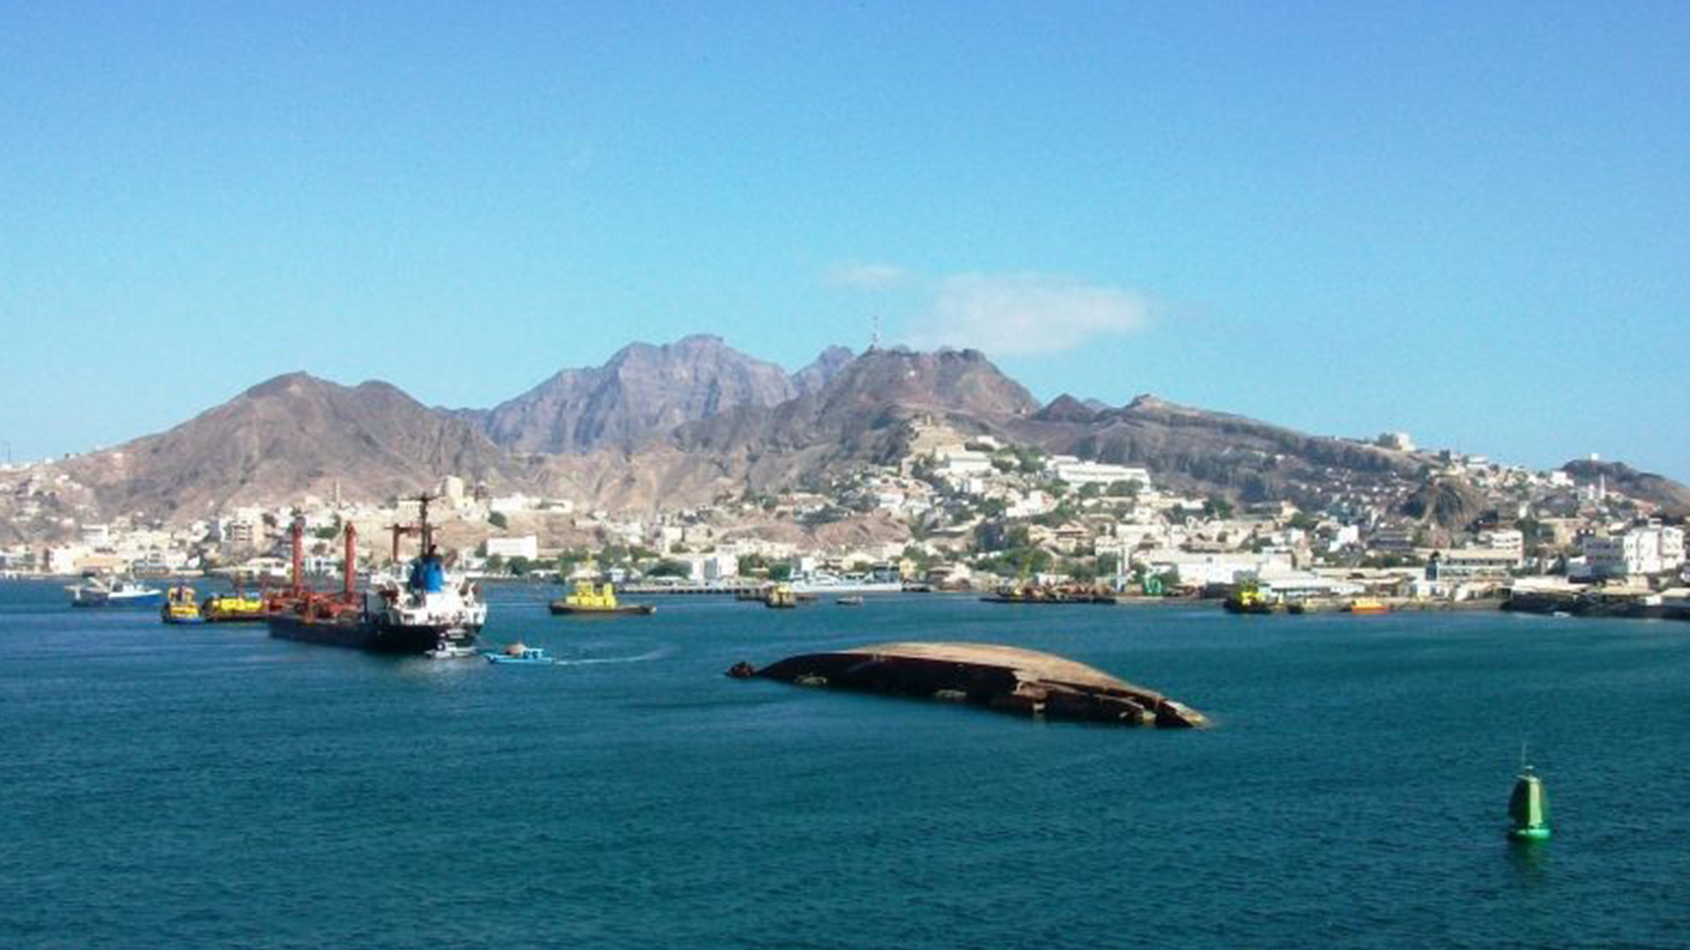 By the time the MV Mako was docked in the Port of Aden, Yemen, a seafarer had been on board for twelve months - nine of them unpaid.